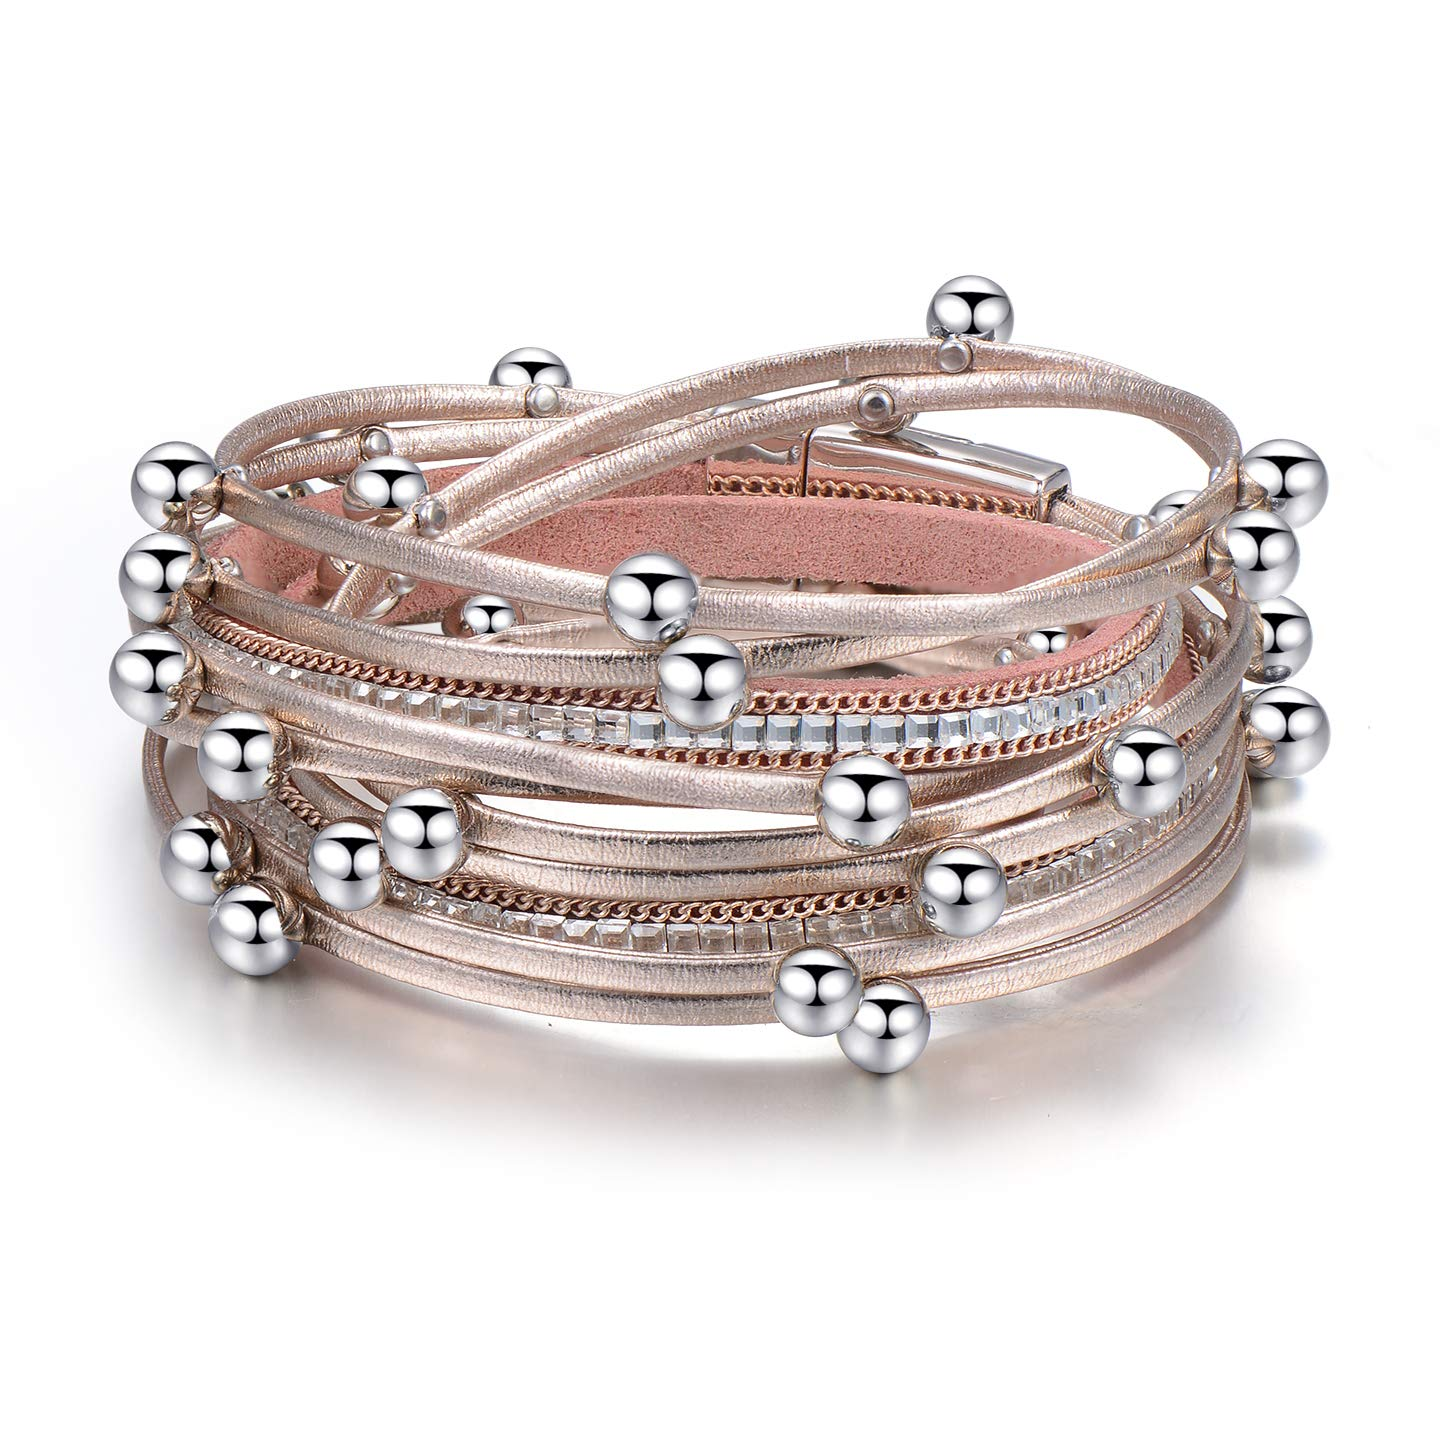 TASBERN Layered Wrap Bracelets Boho Bead Leather Rope Cuff Bangle with Magnetic Clasp for Women Teen Girl (Rose Gold Beaded Bracelets)